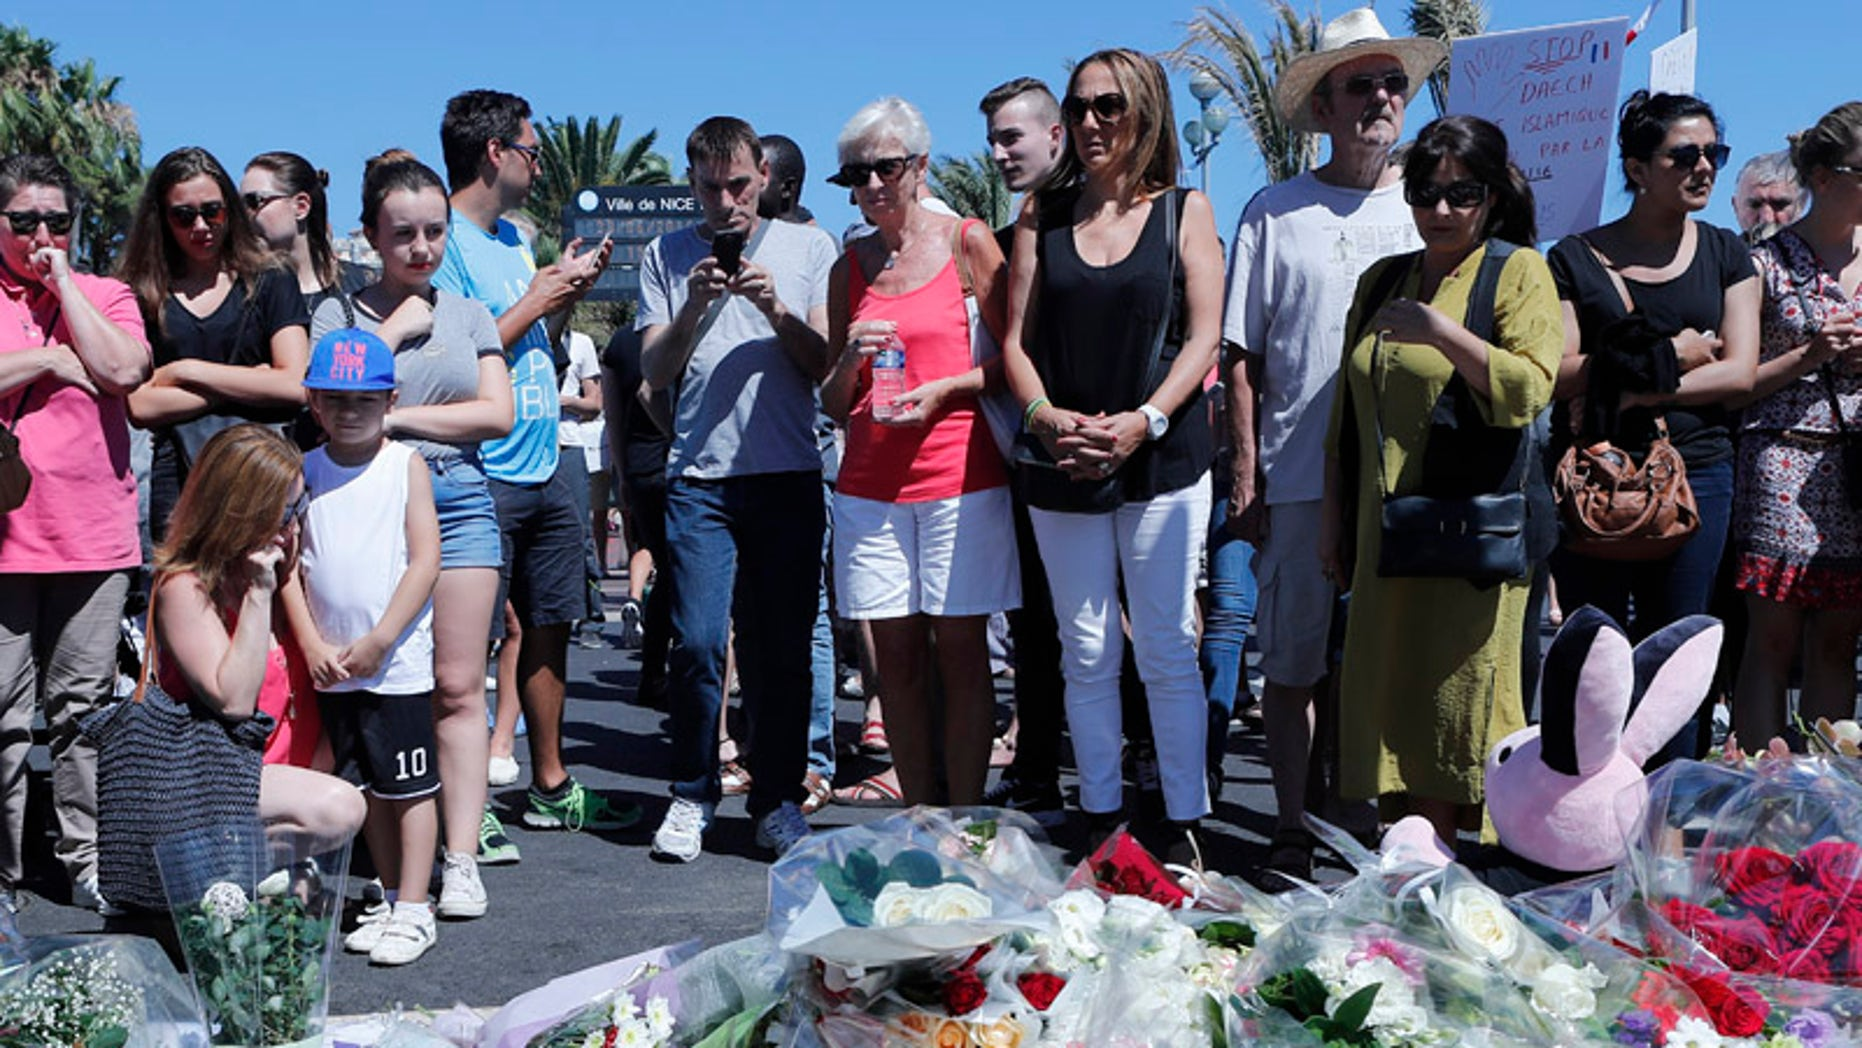 People stand by flowers laid near the scene where a truck mowed through revelers in Nice, southern France, Friday, July 15, 2016.  A large truck mowed through revelers gathered for Bastille Day fireworks in Nice, killing more than 80 people and sending people fleeing into the sea as it bore down for more than a mile along the Riviera city's famed waterfront promenade.  (AP Photo/Francois Mori)